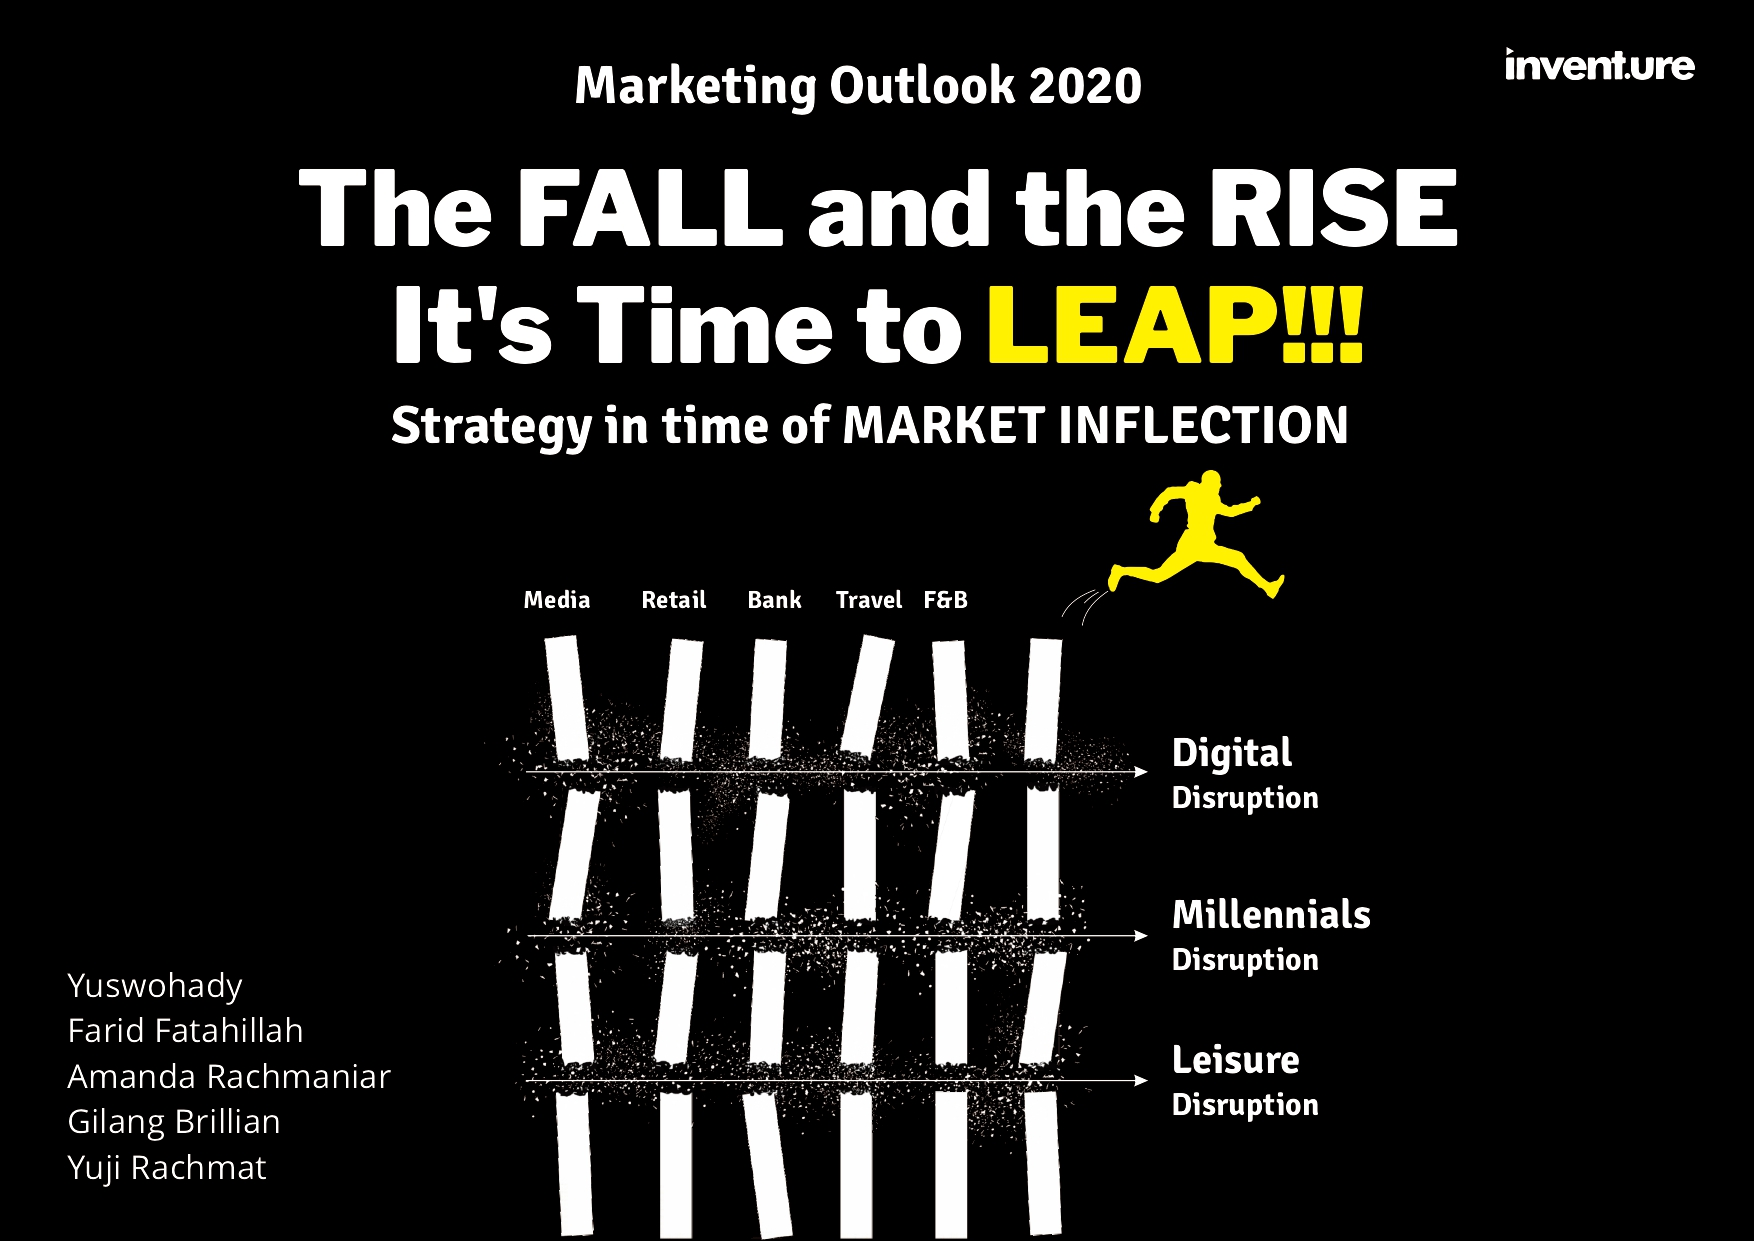 MARKETING OUTLOOK 2020